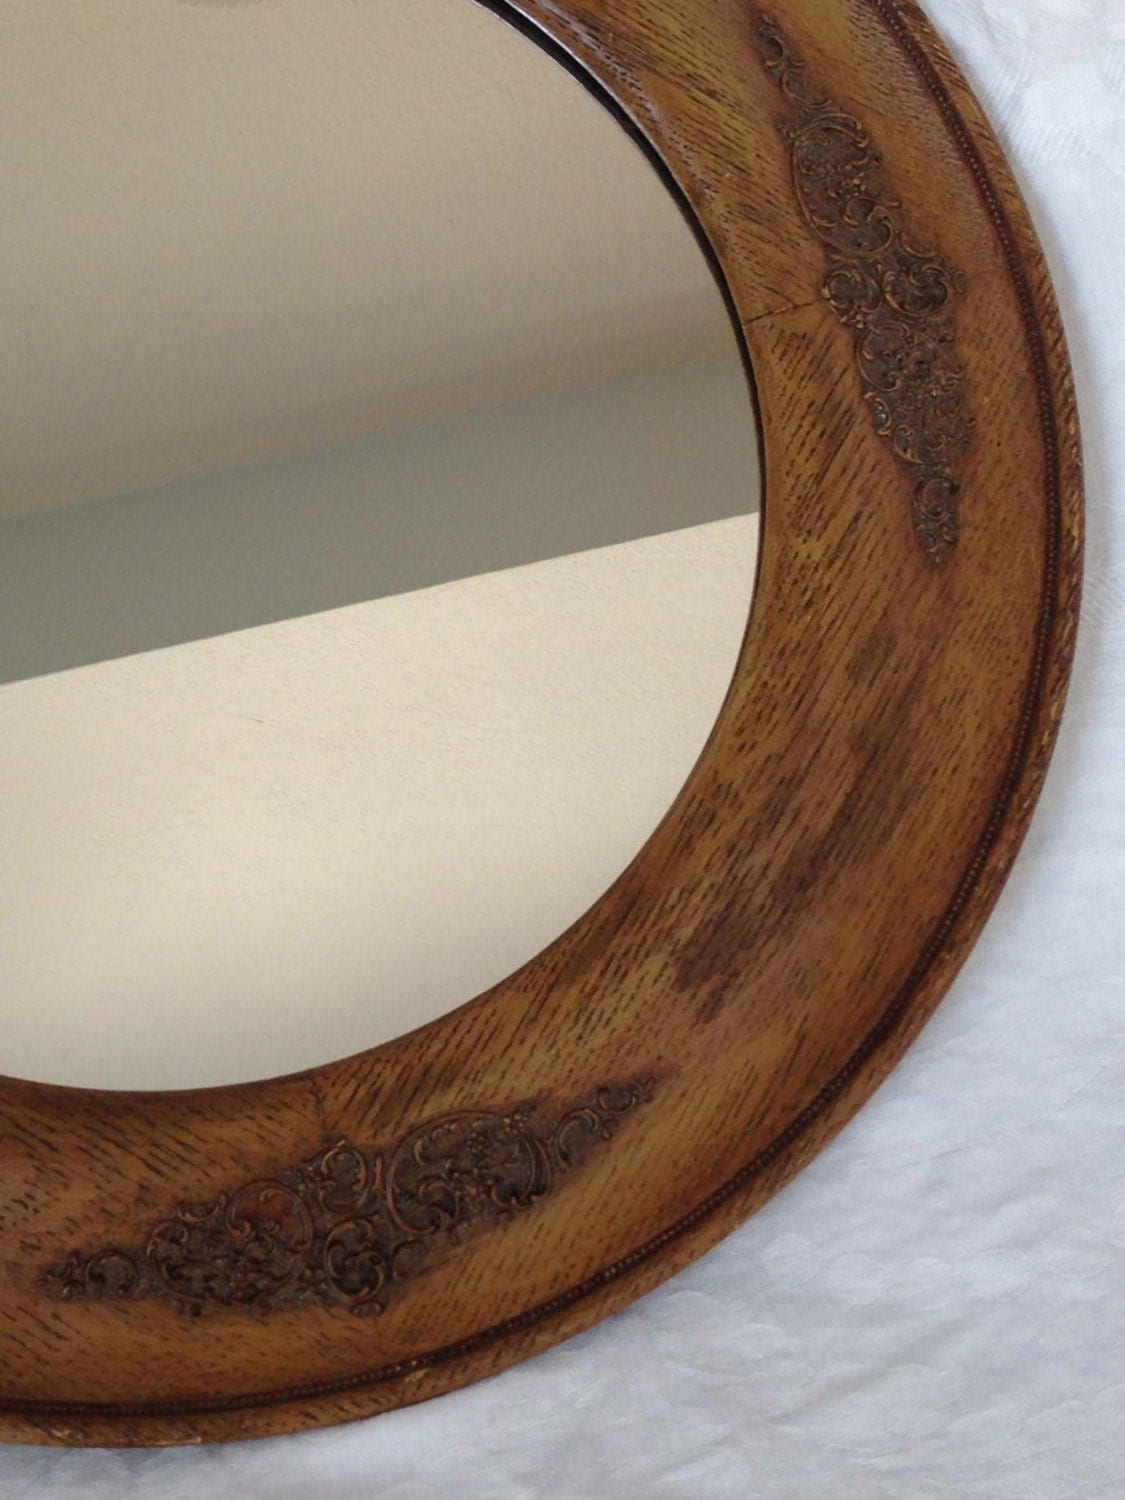 17 Inch Vintage Round Wood Framed Mirror With Appliqu 233 D